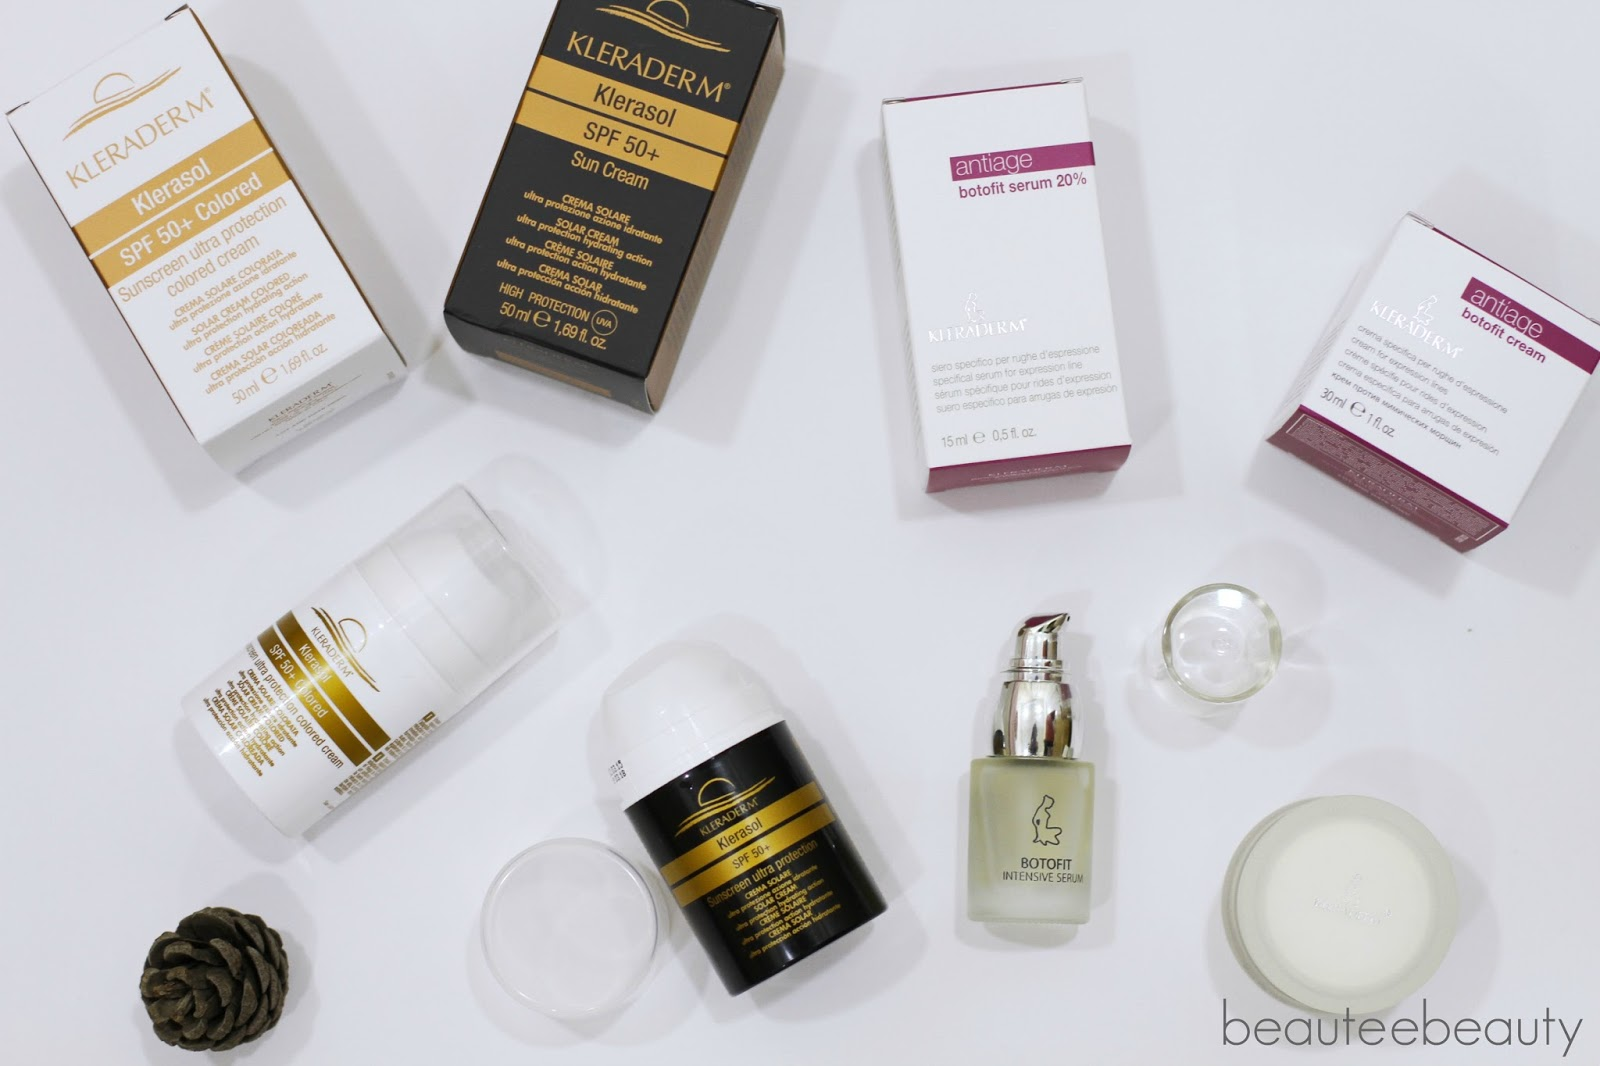 Beautee Beauty Malaysian Beauty Blog Review Kleraderm Antiage